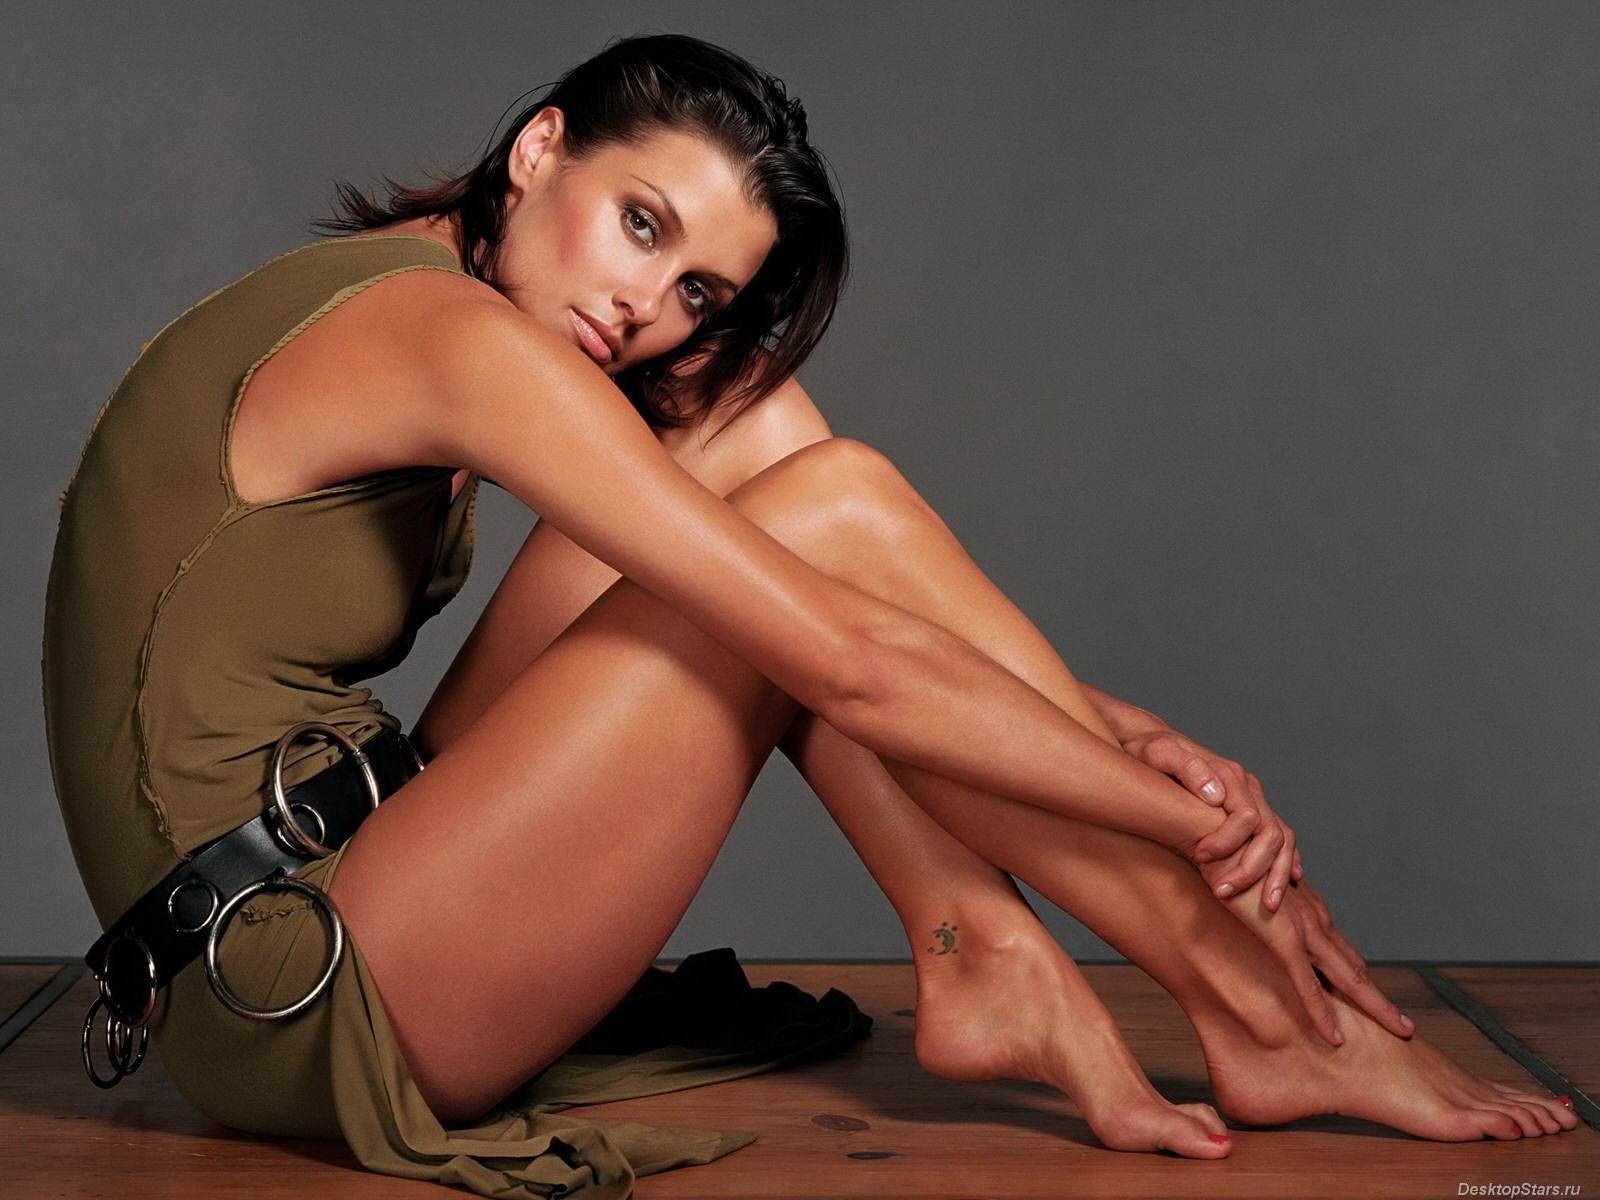 Bridget Moynahan #005 - 1600x1200 Wallpapers Pictures Photos Images